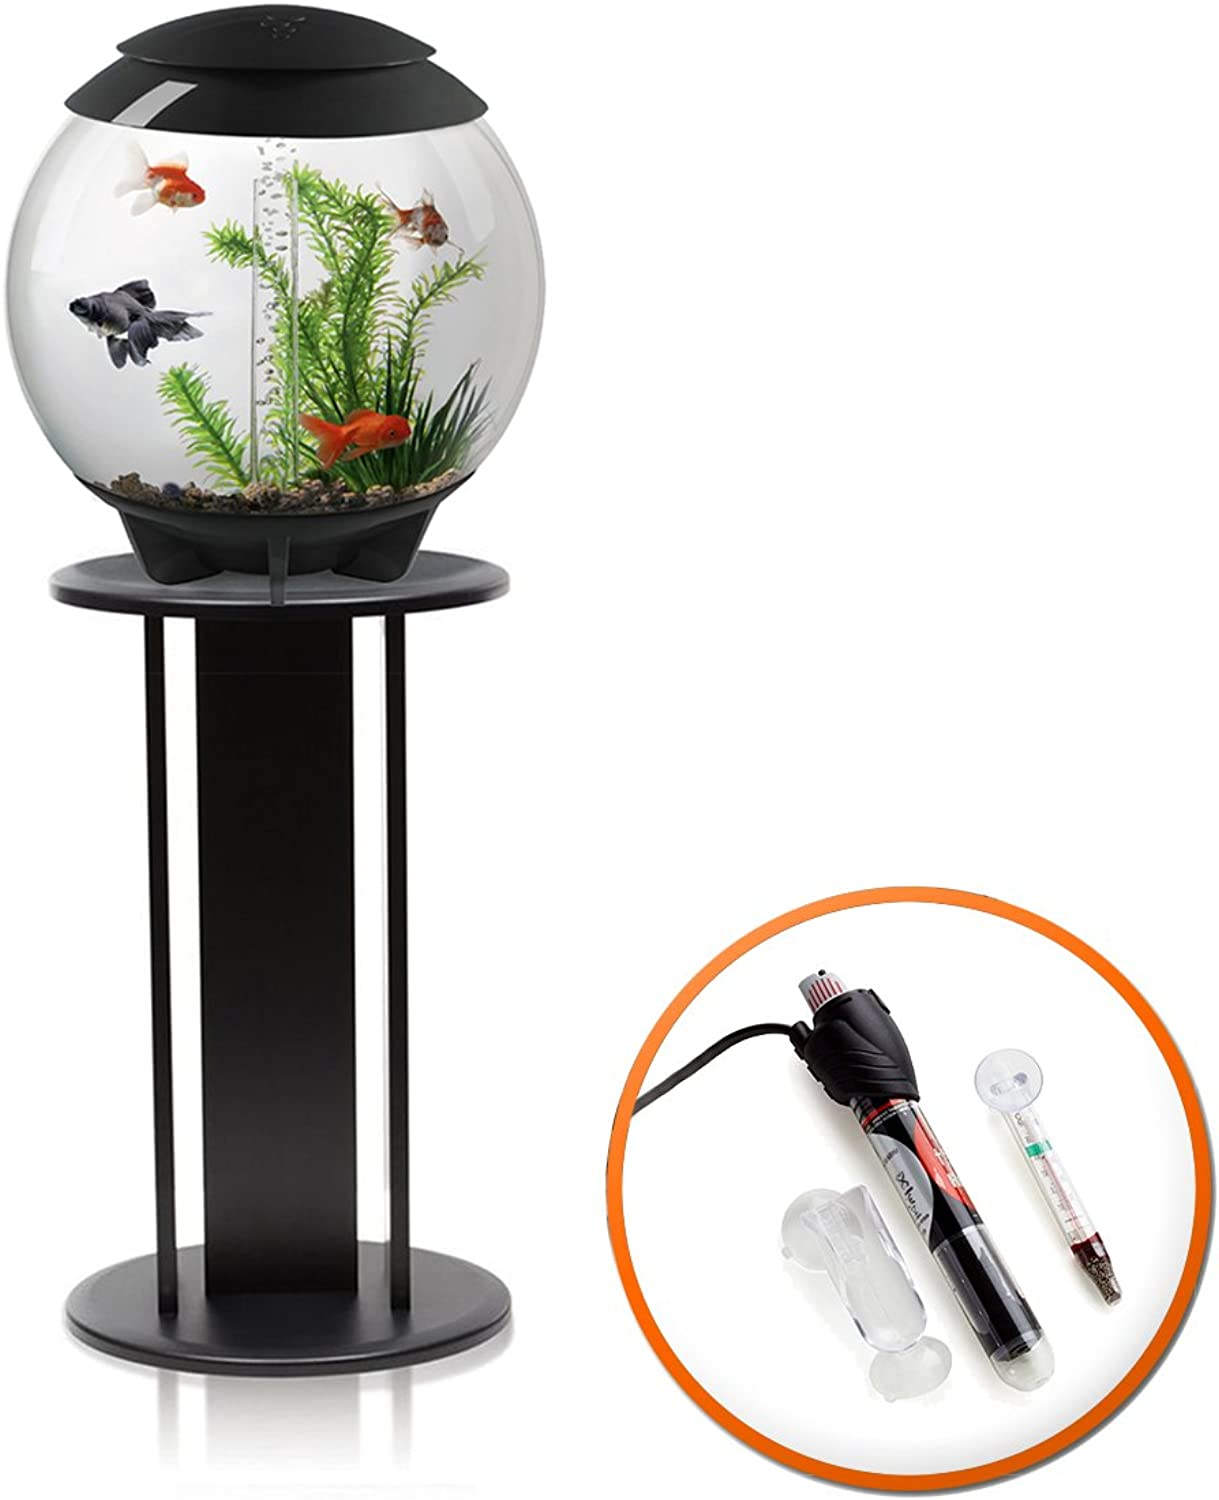 BiOrb Halo 30L Aquarium in Grey with Moonlight LED Lighting, Heater Pack and Black Stand